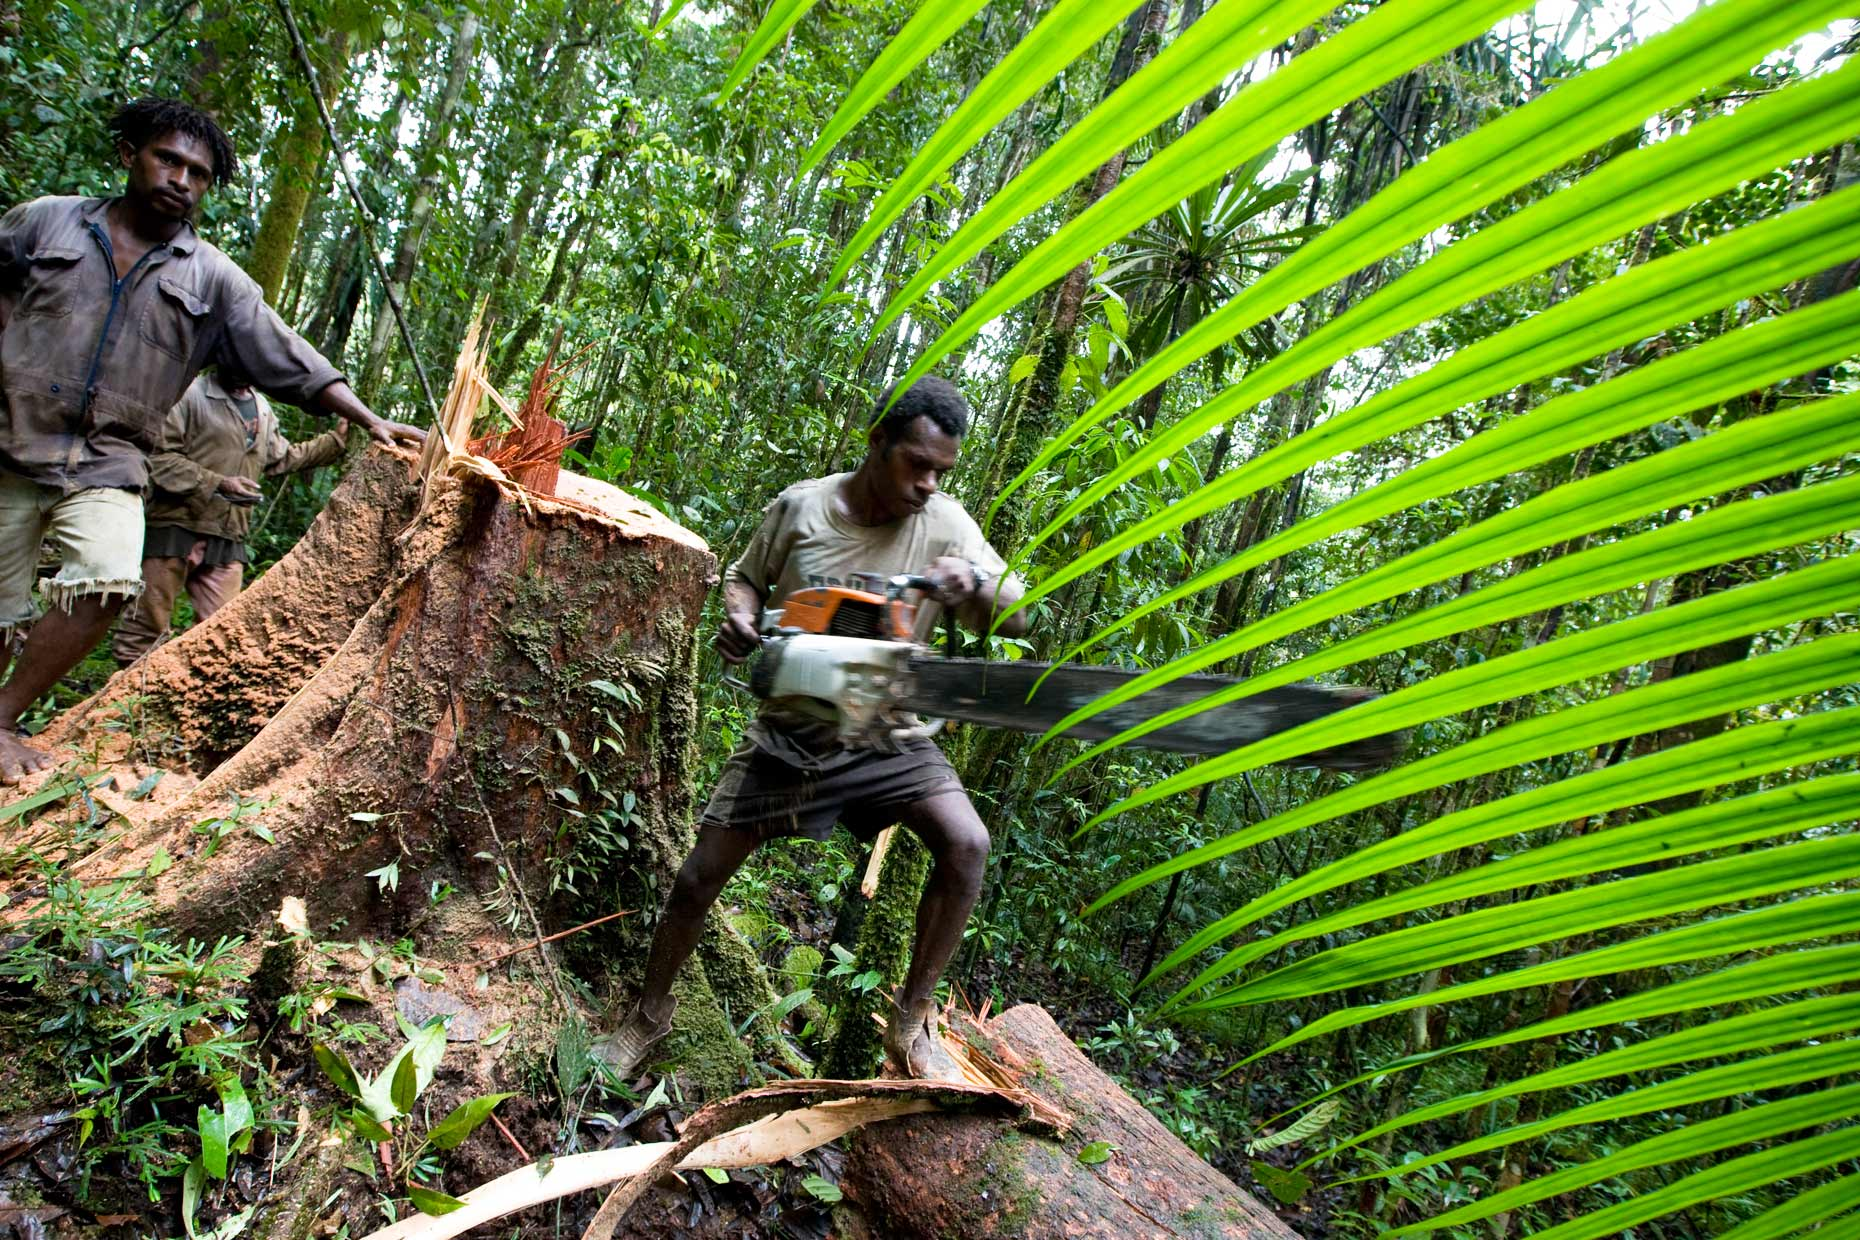 20080907_illegal-logging_6386.jpg